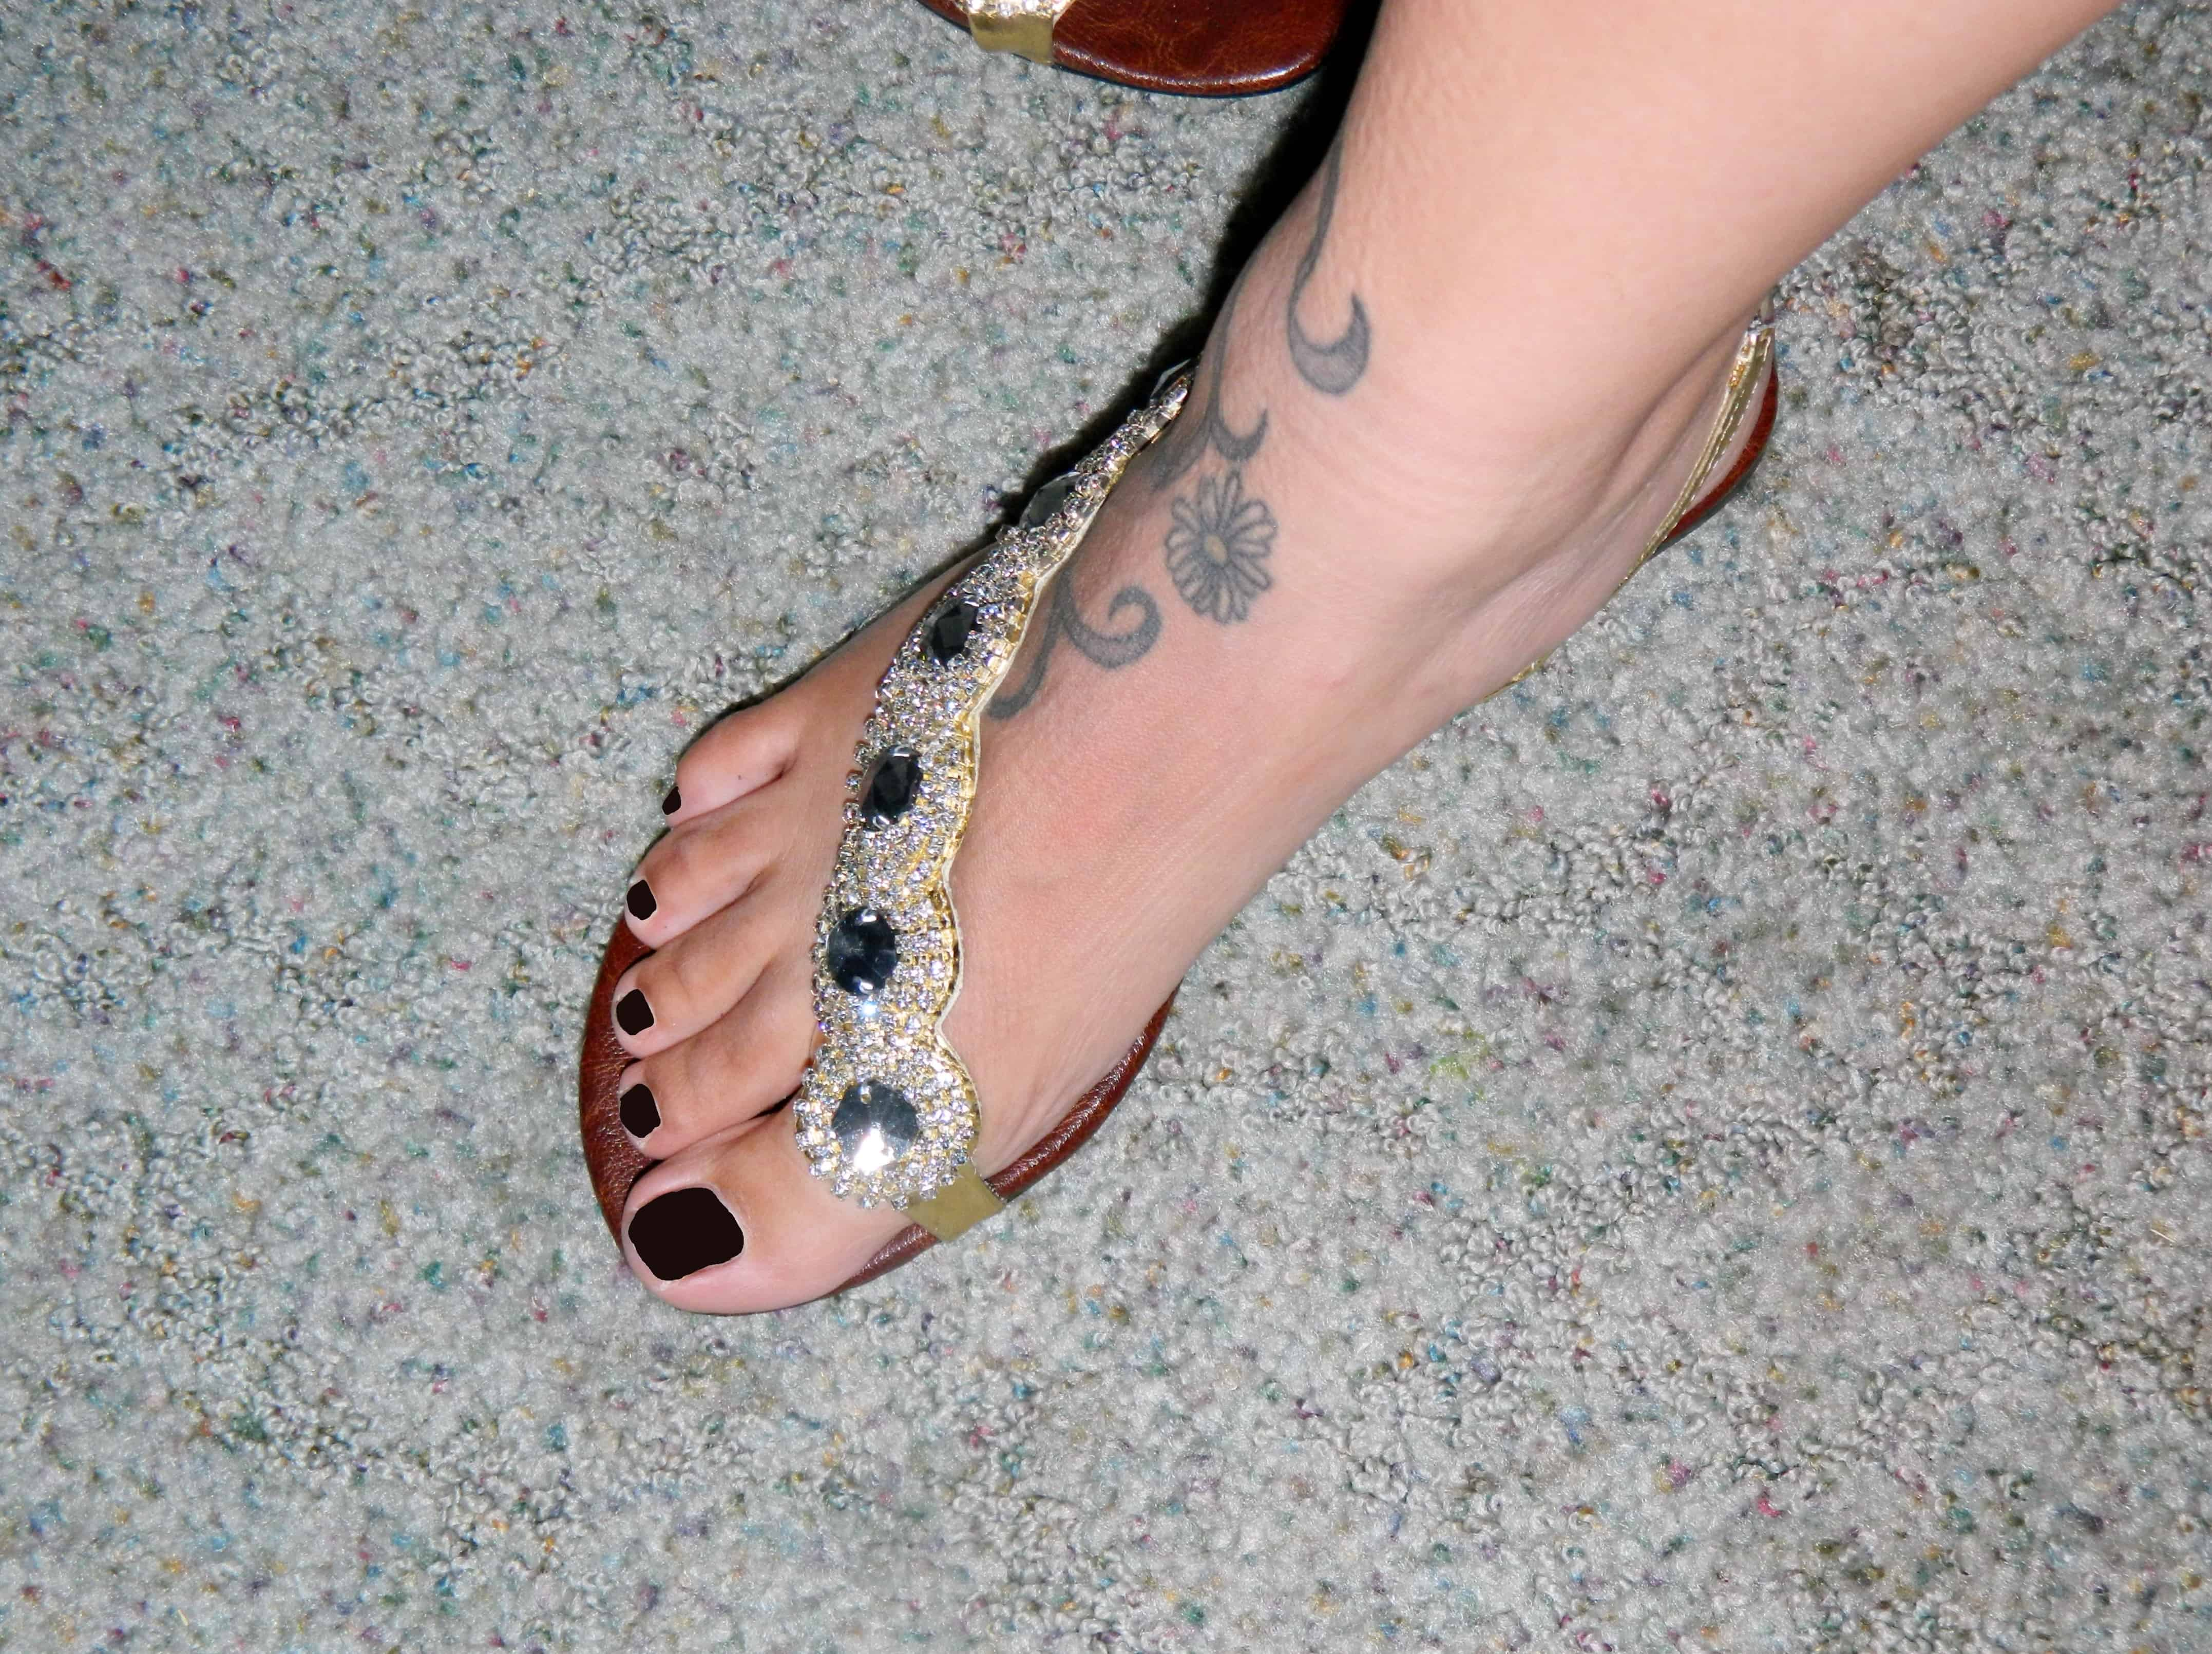 Fibi and Clo Sandals {Review and Giveaway}